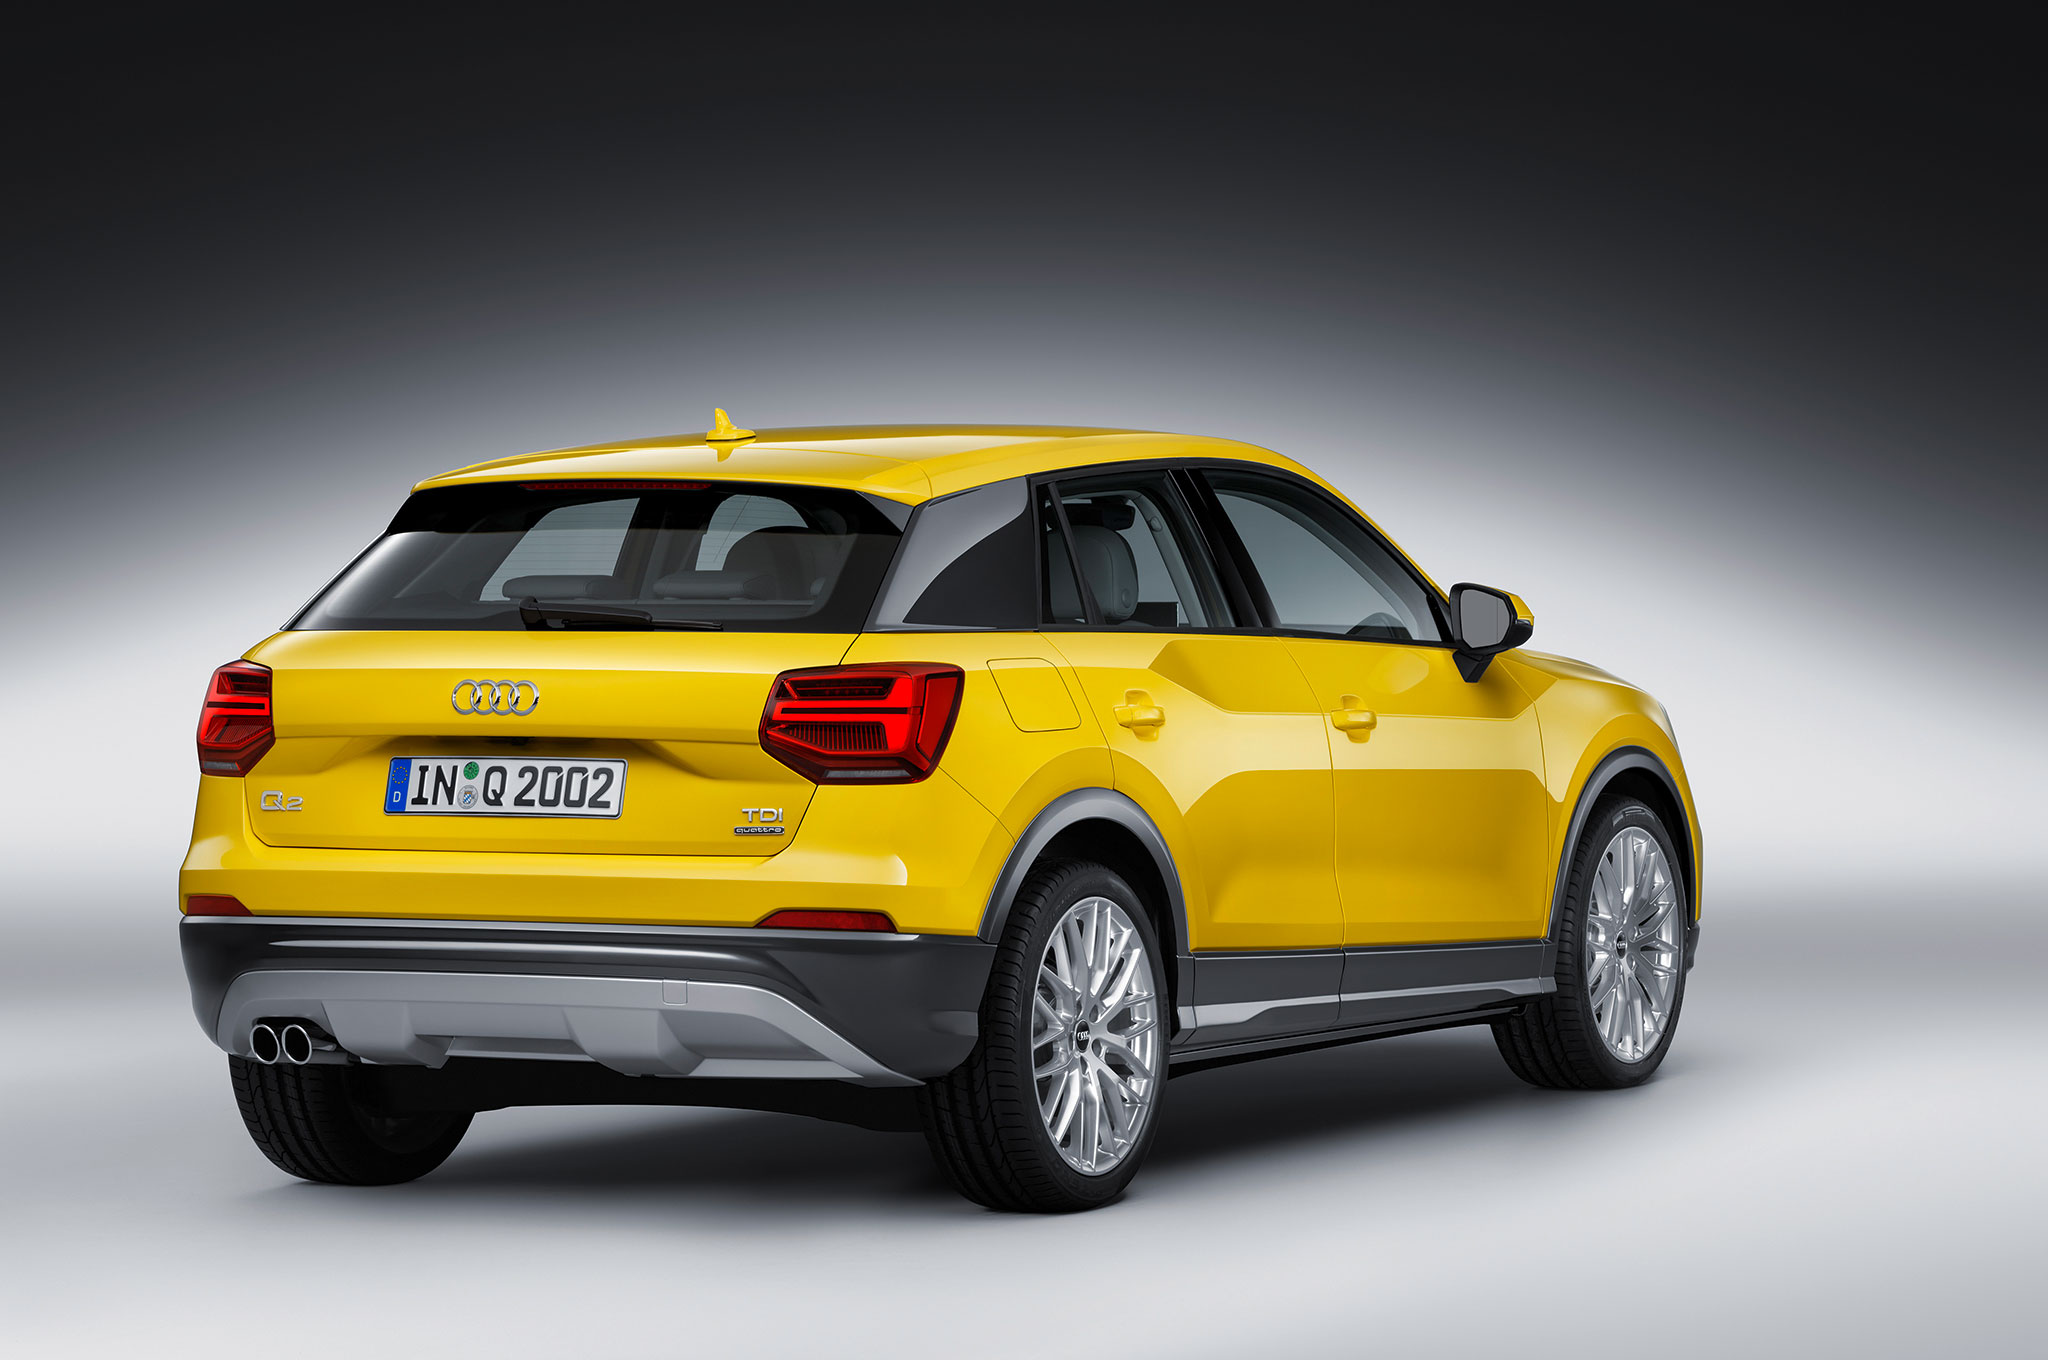 Audi To Make Its Cars Look More Different Automobile Magazine - Audi automobile